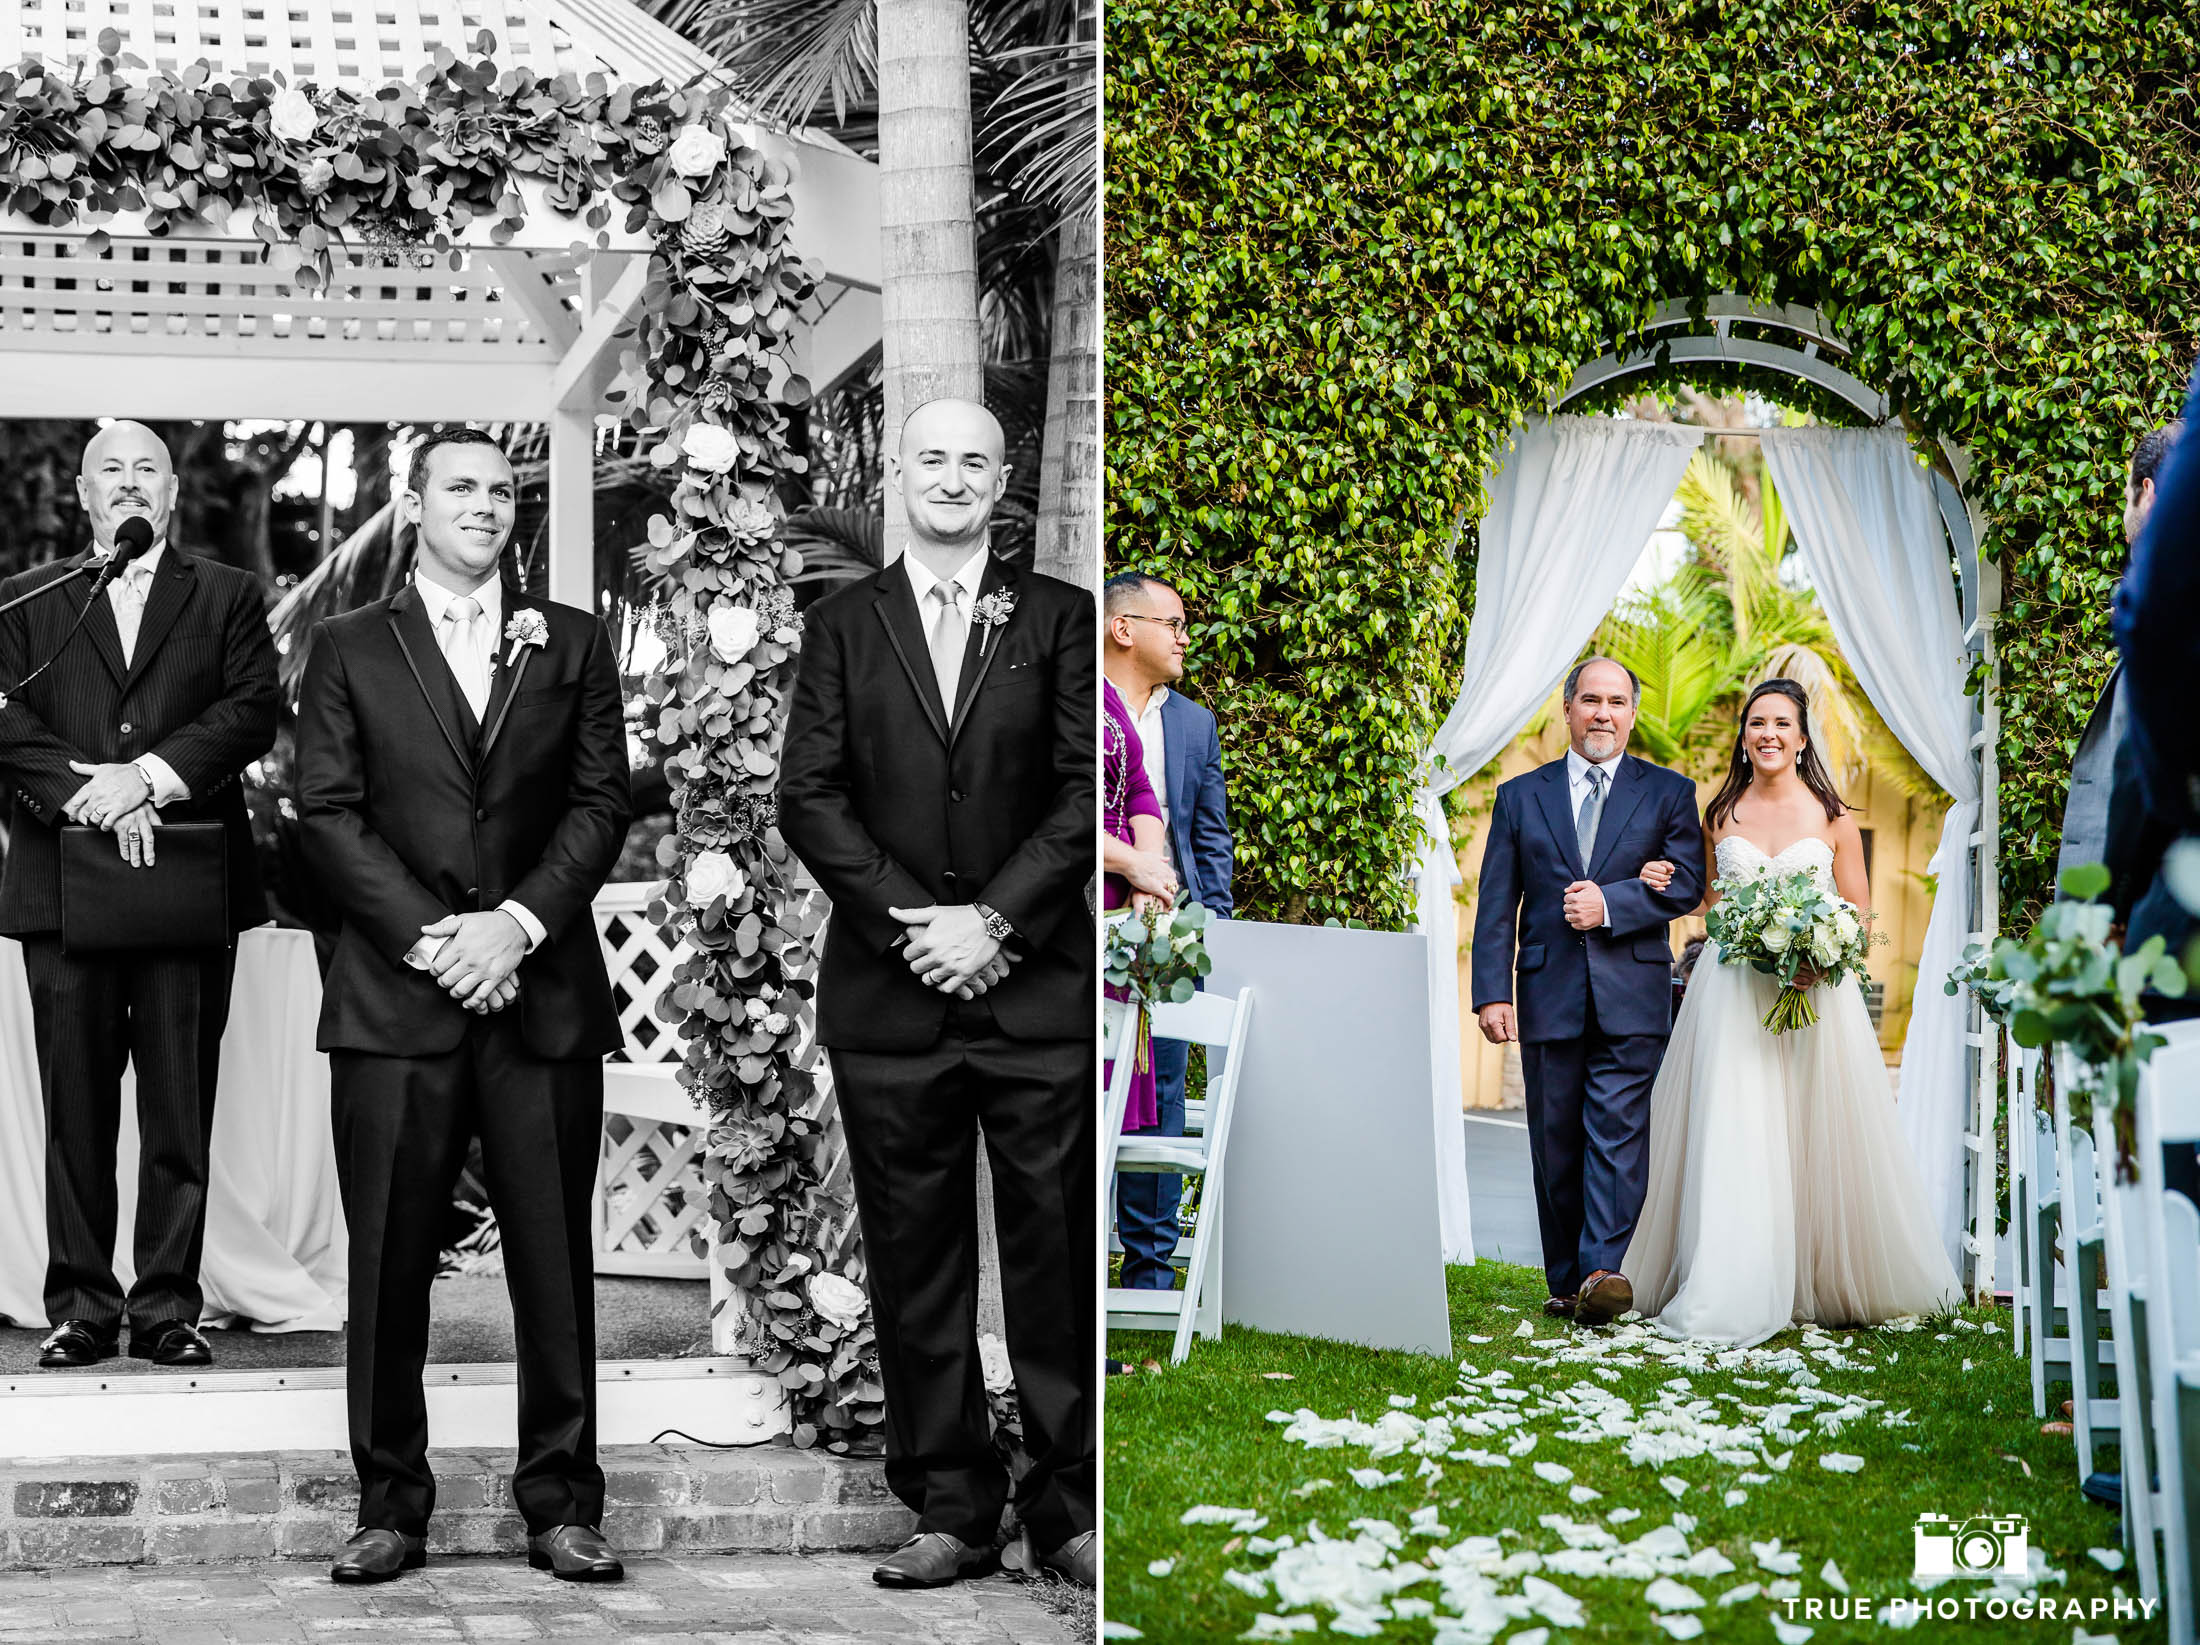 Groom smiles as he sees Bride walk down aisle in dress designed by Here Comes the Bride